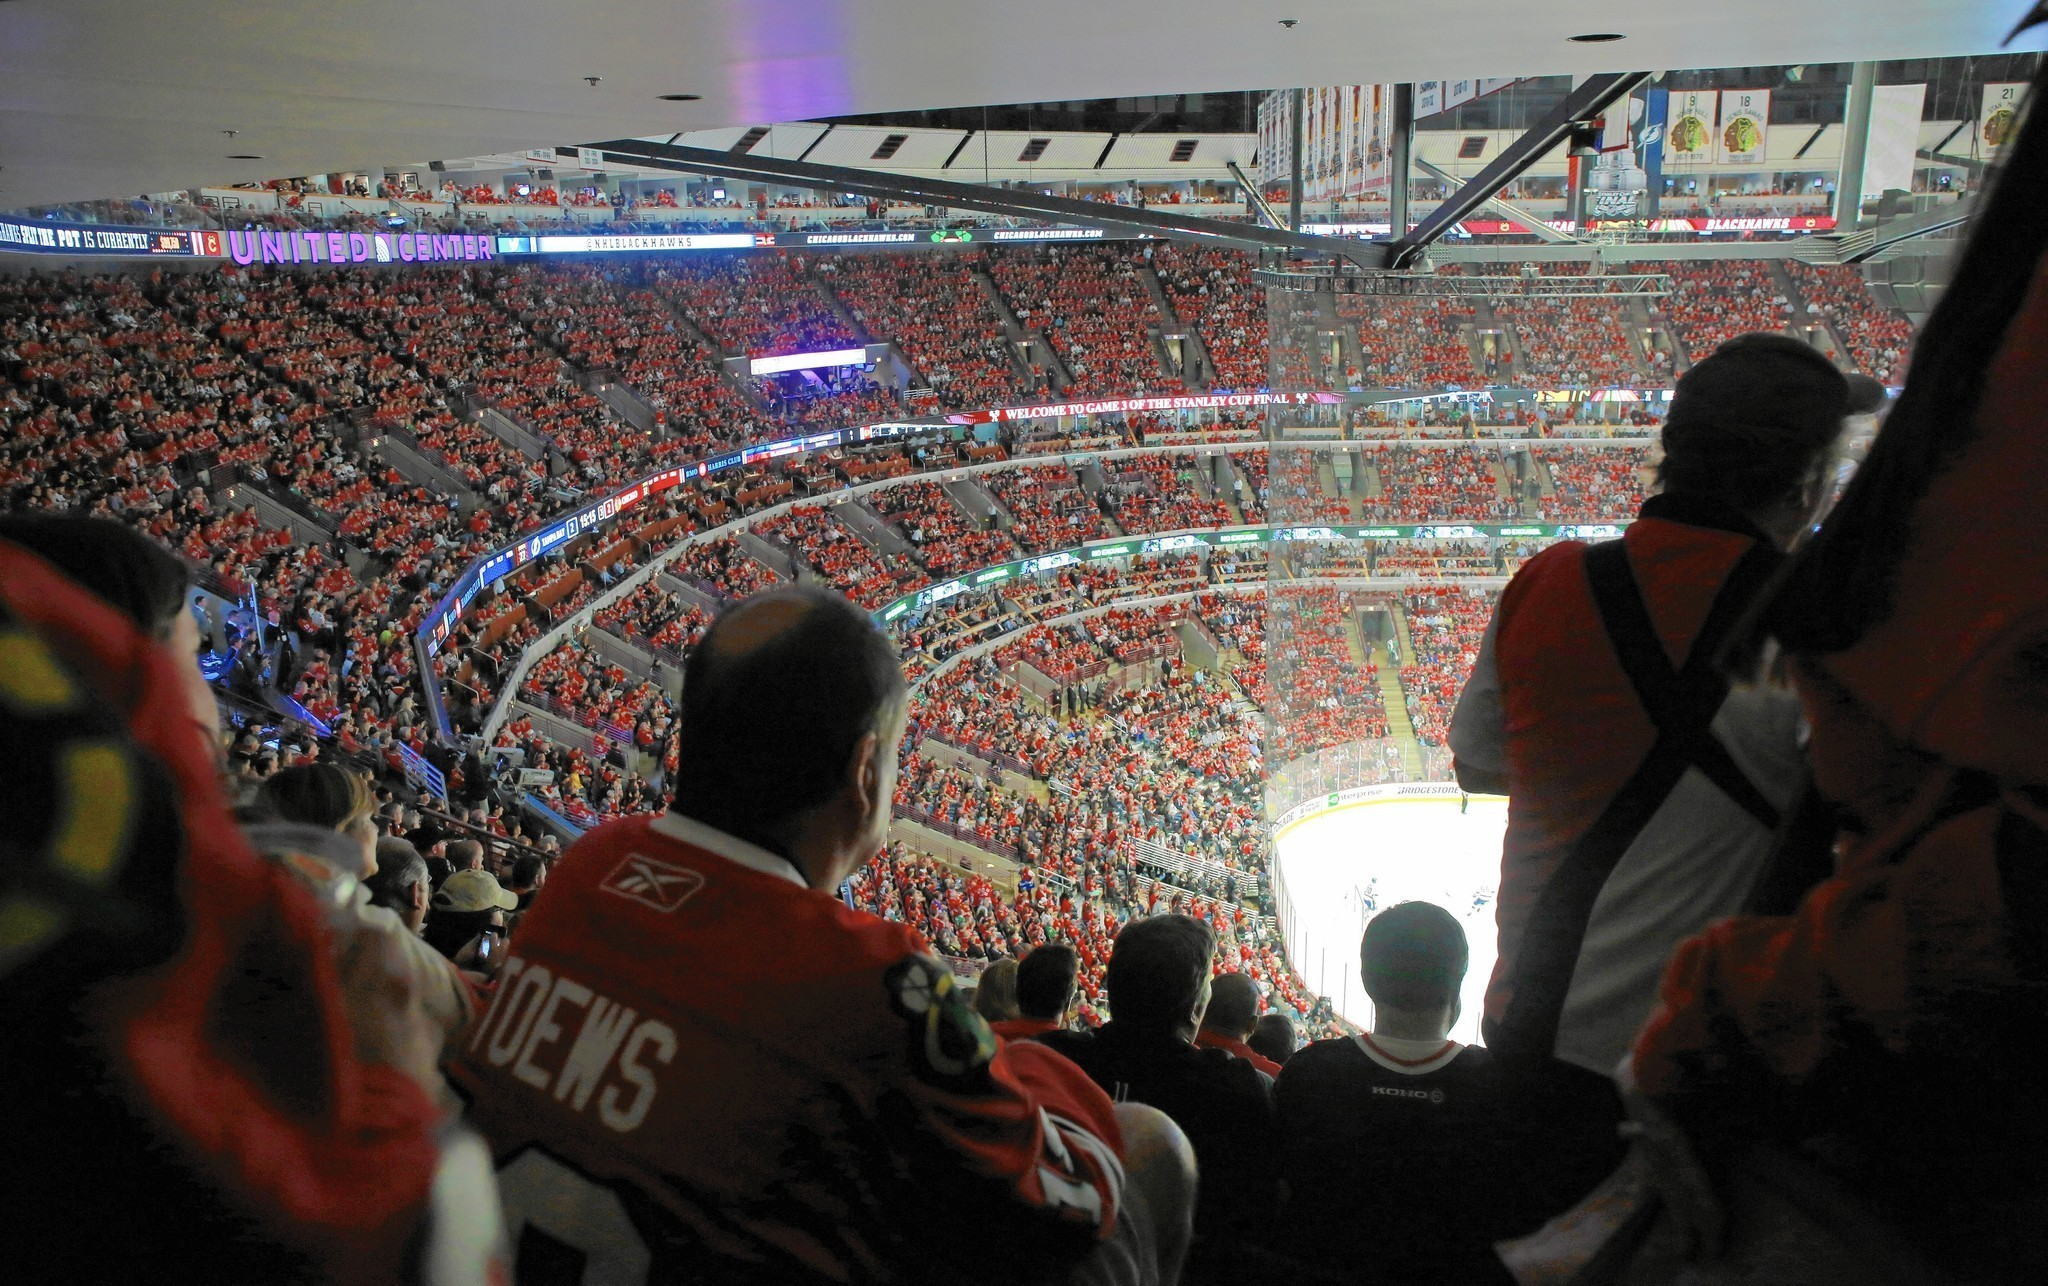 Near The Rafters Fans Stand As Hawks Play For Stanley Cup